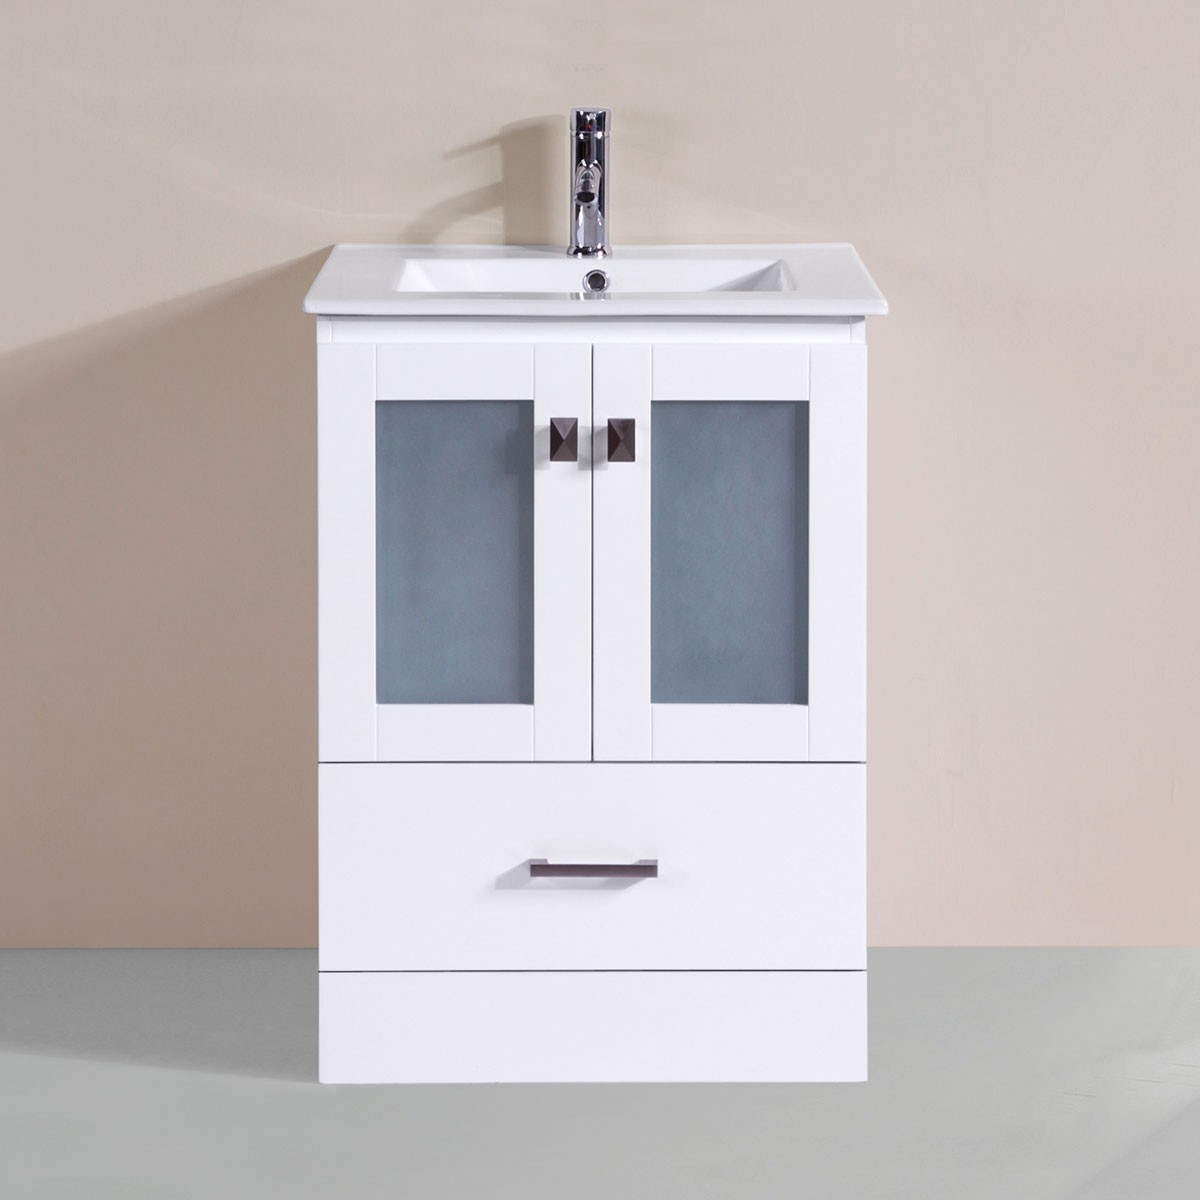 24 In. Plywood Vanity with Basin (DK-T9312-24WV)